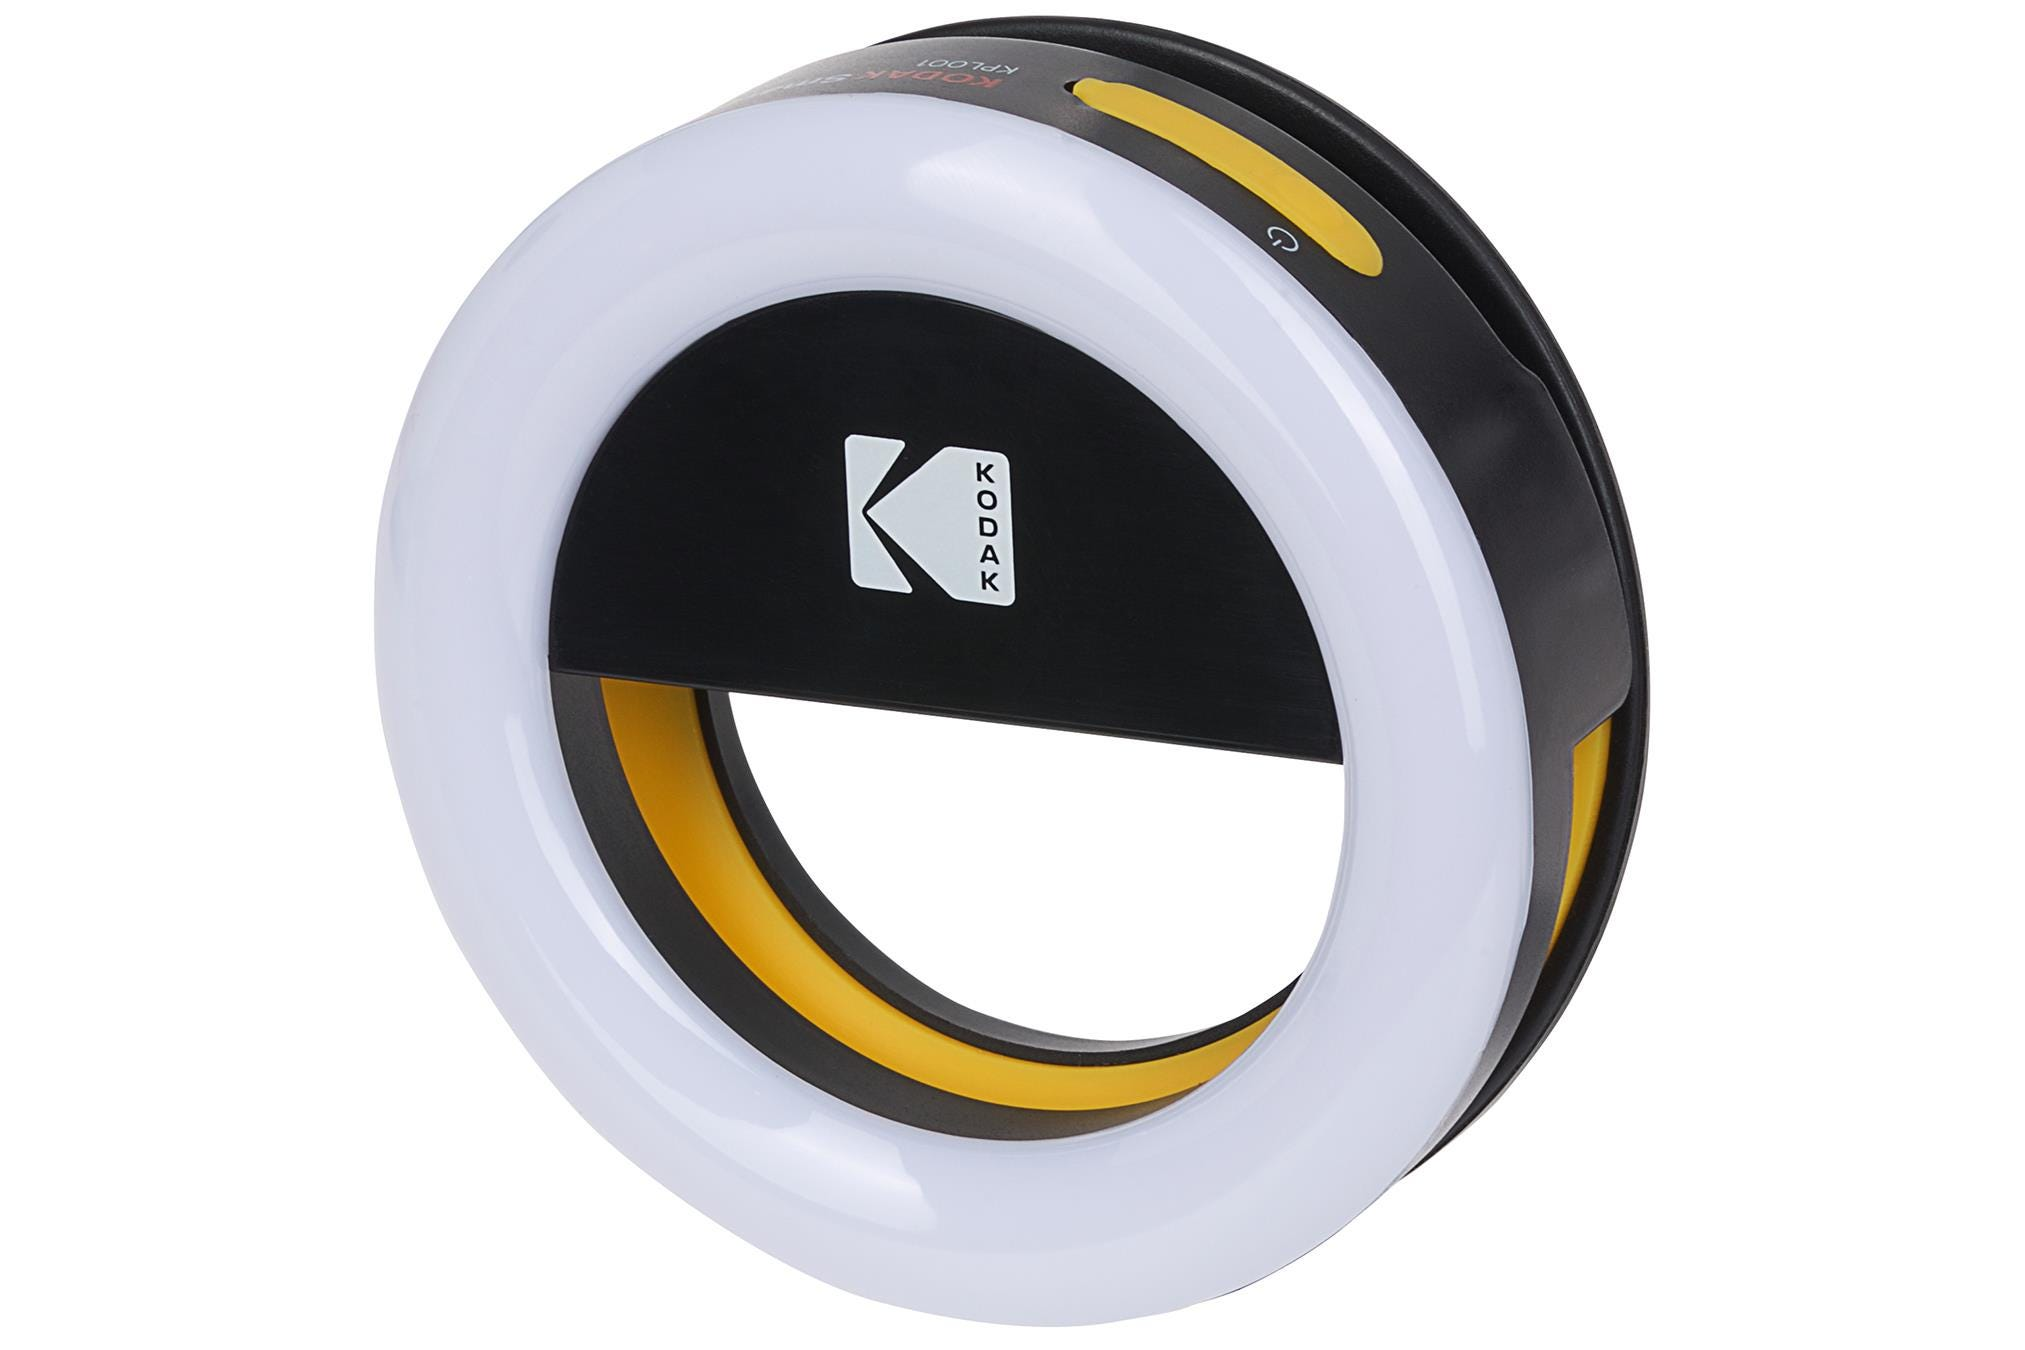 Kodak KPL001 Smartphone Portrait Ring Light